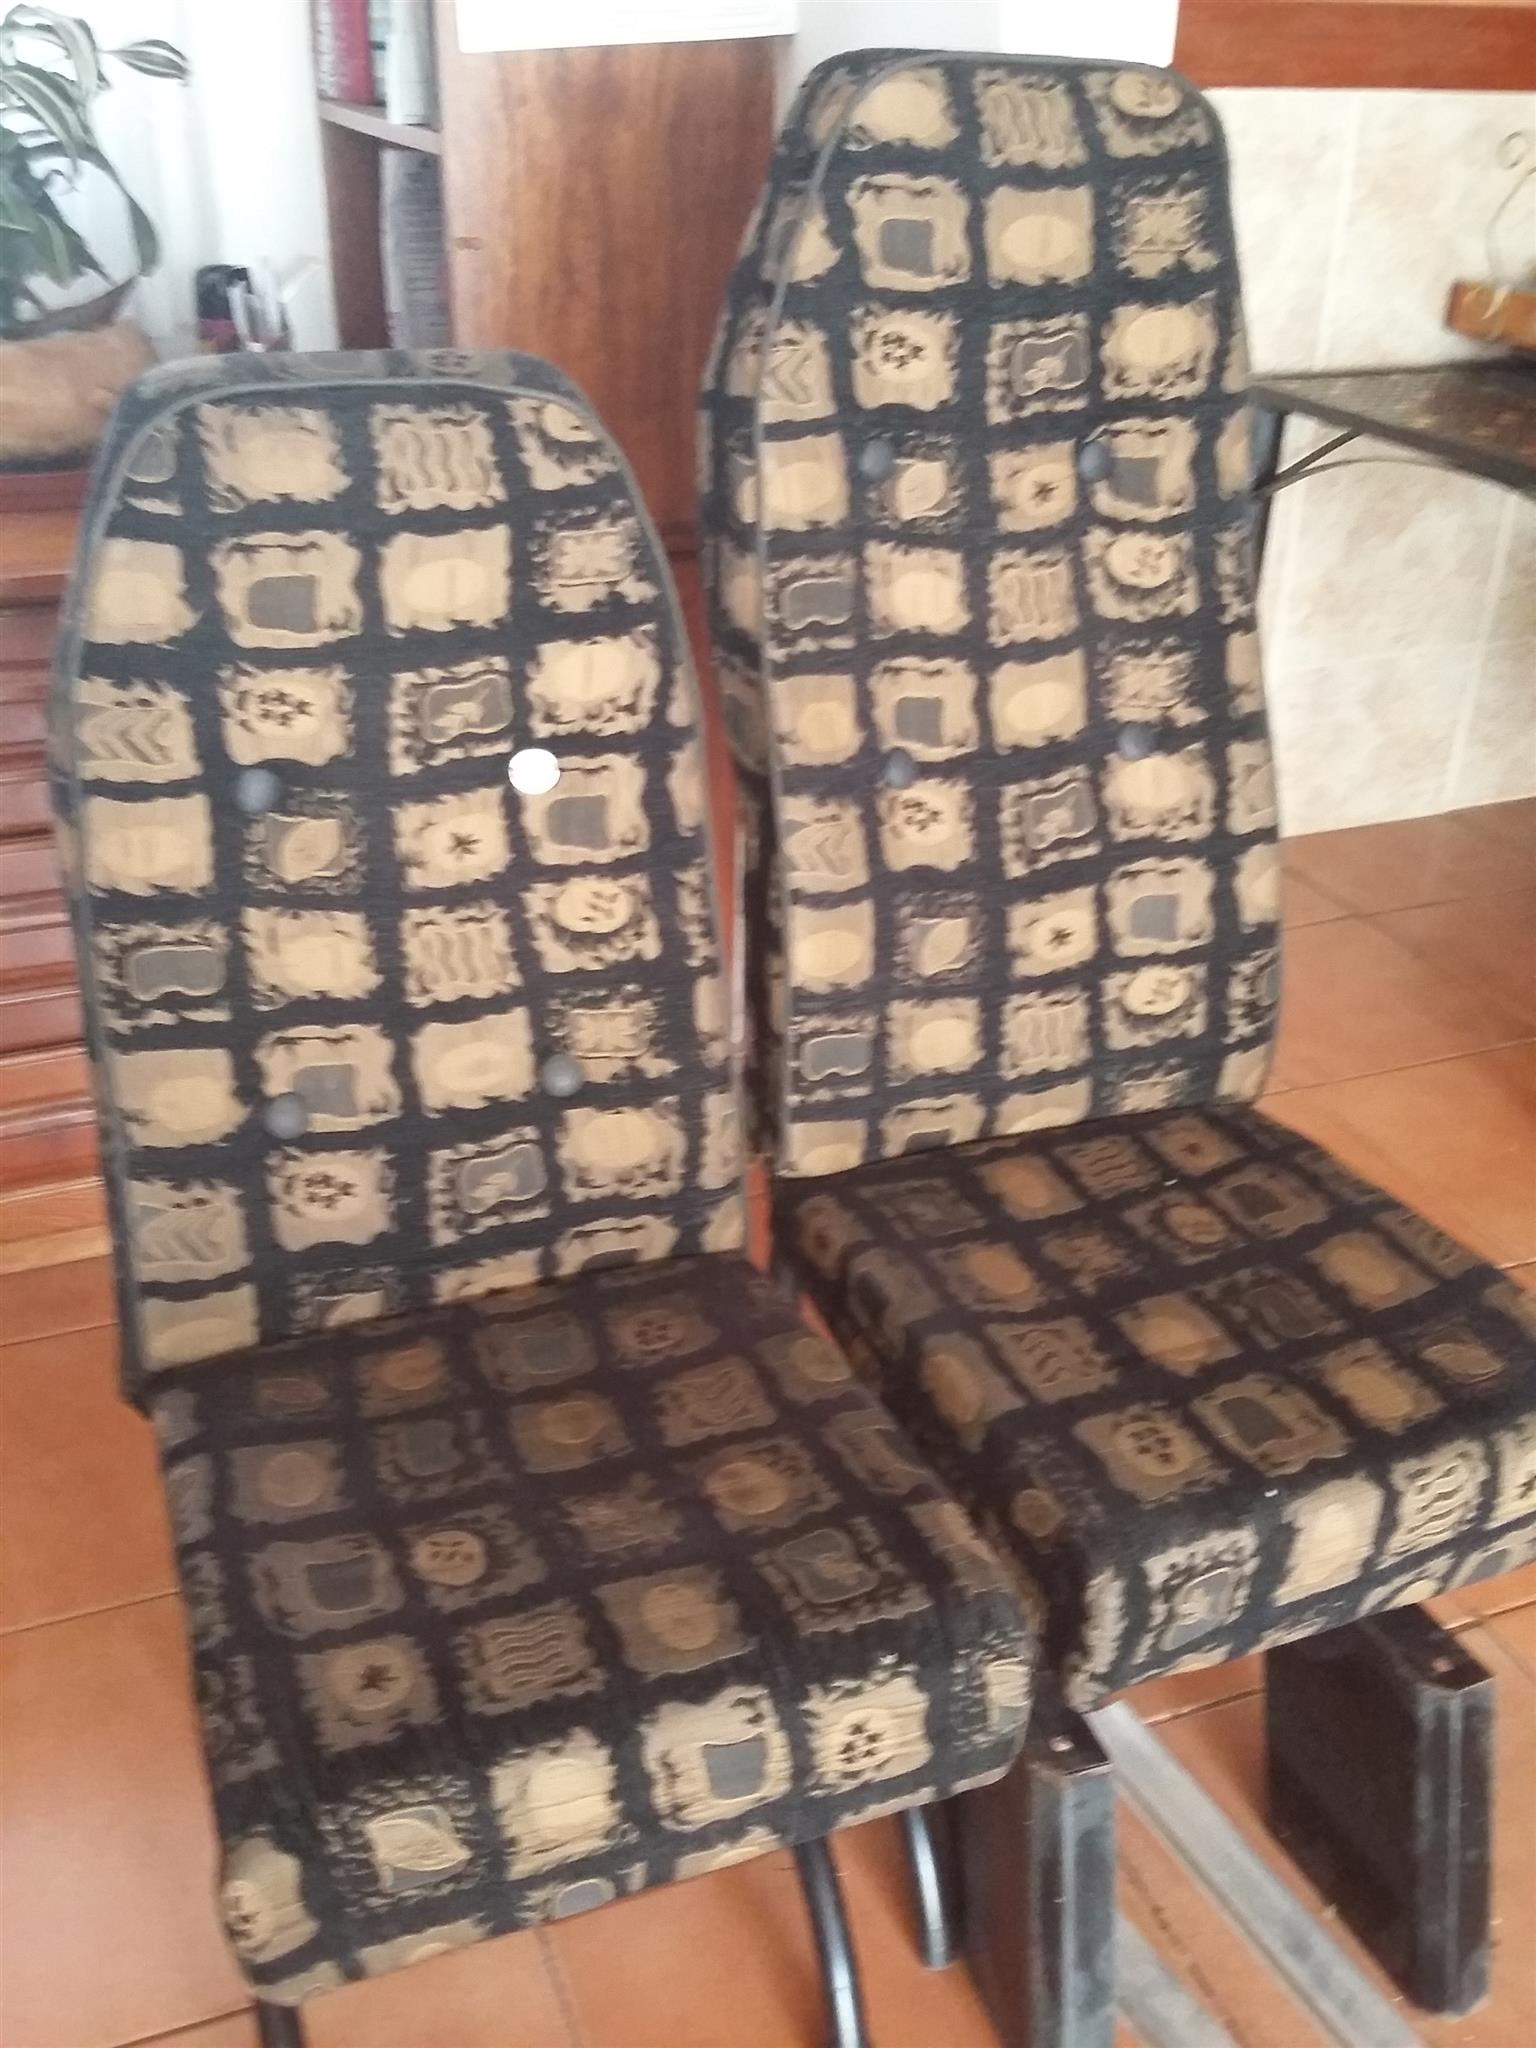 6 Bus seats for sale (2 high backs  and 4 standards) can be used for game vehicle all the accessories come with the seats. R2200.00 for all 6 seats. Contact no. 0826915791